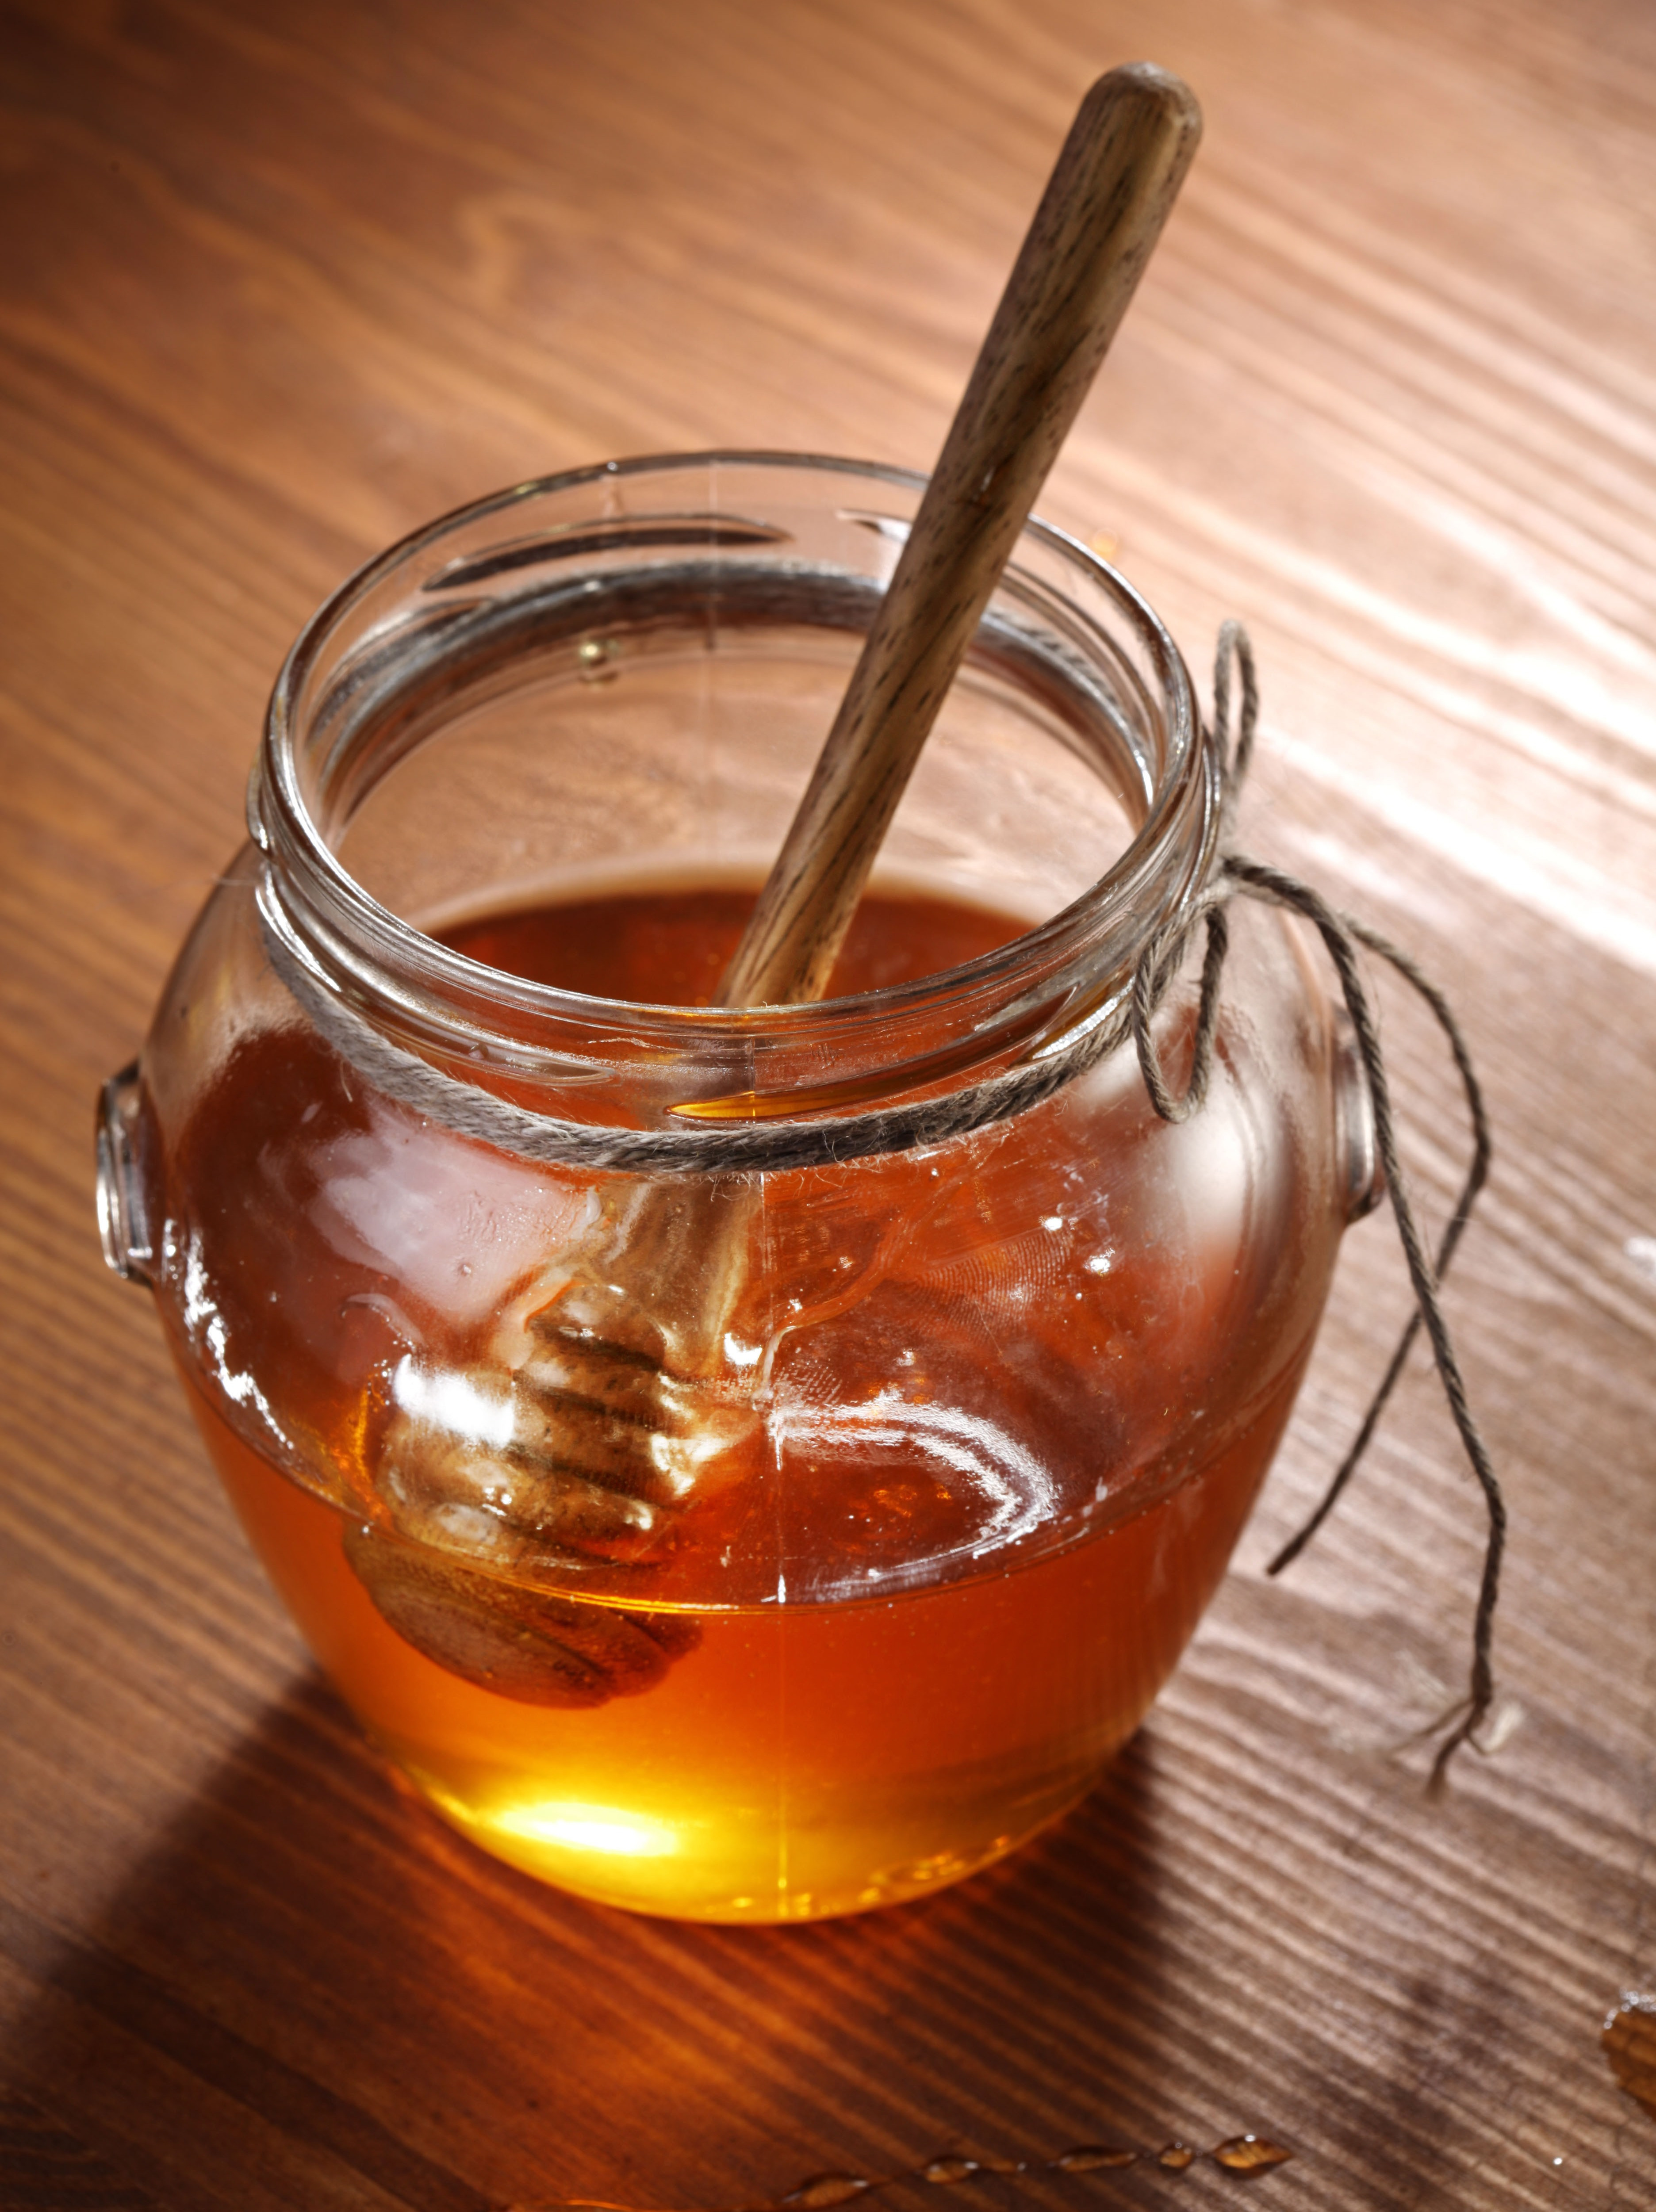 Research shows GPs can prescribe honey instead of antibiotics for chest infections